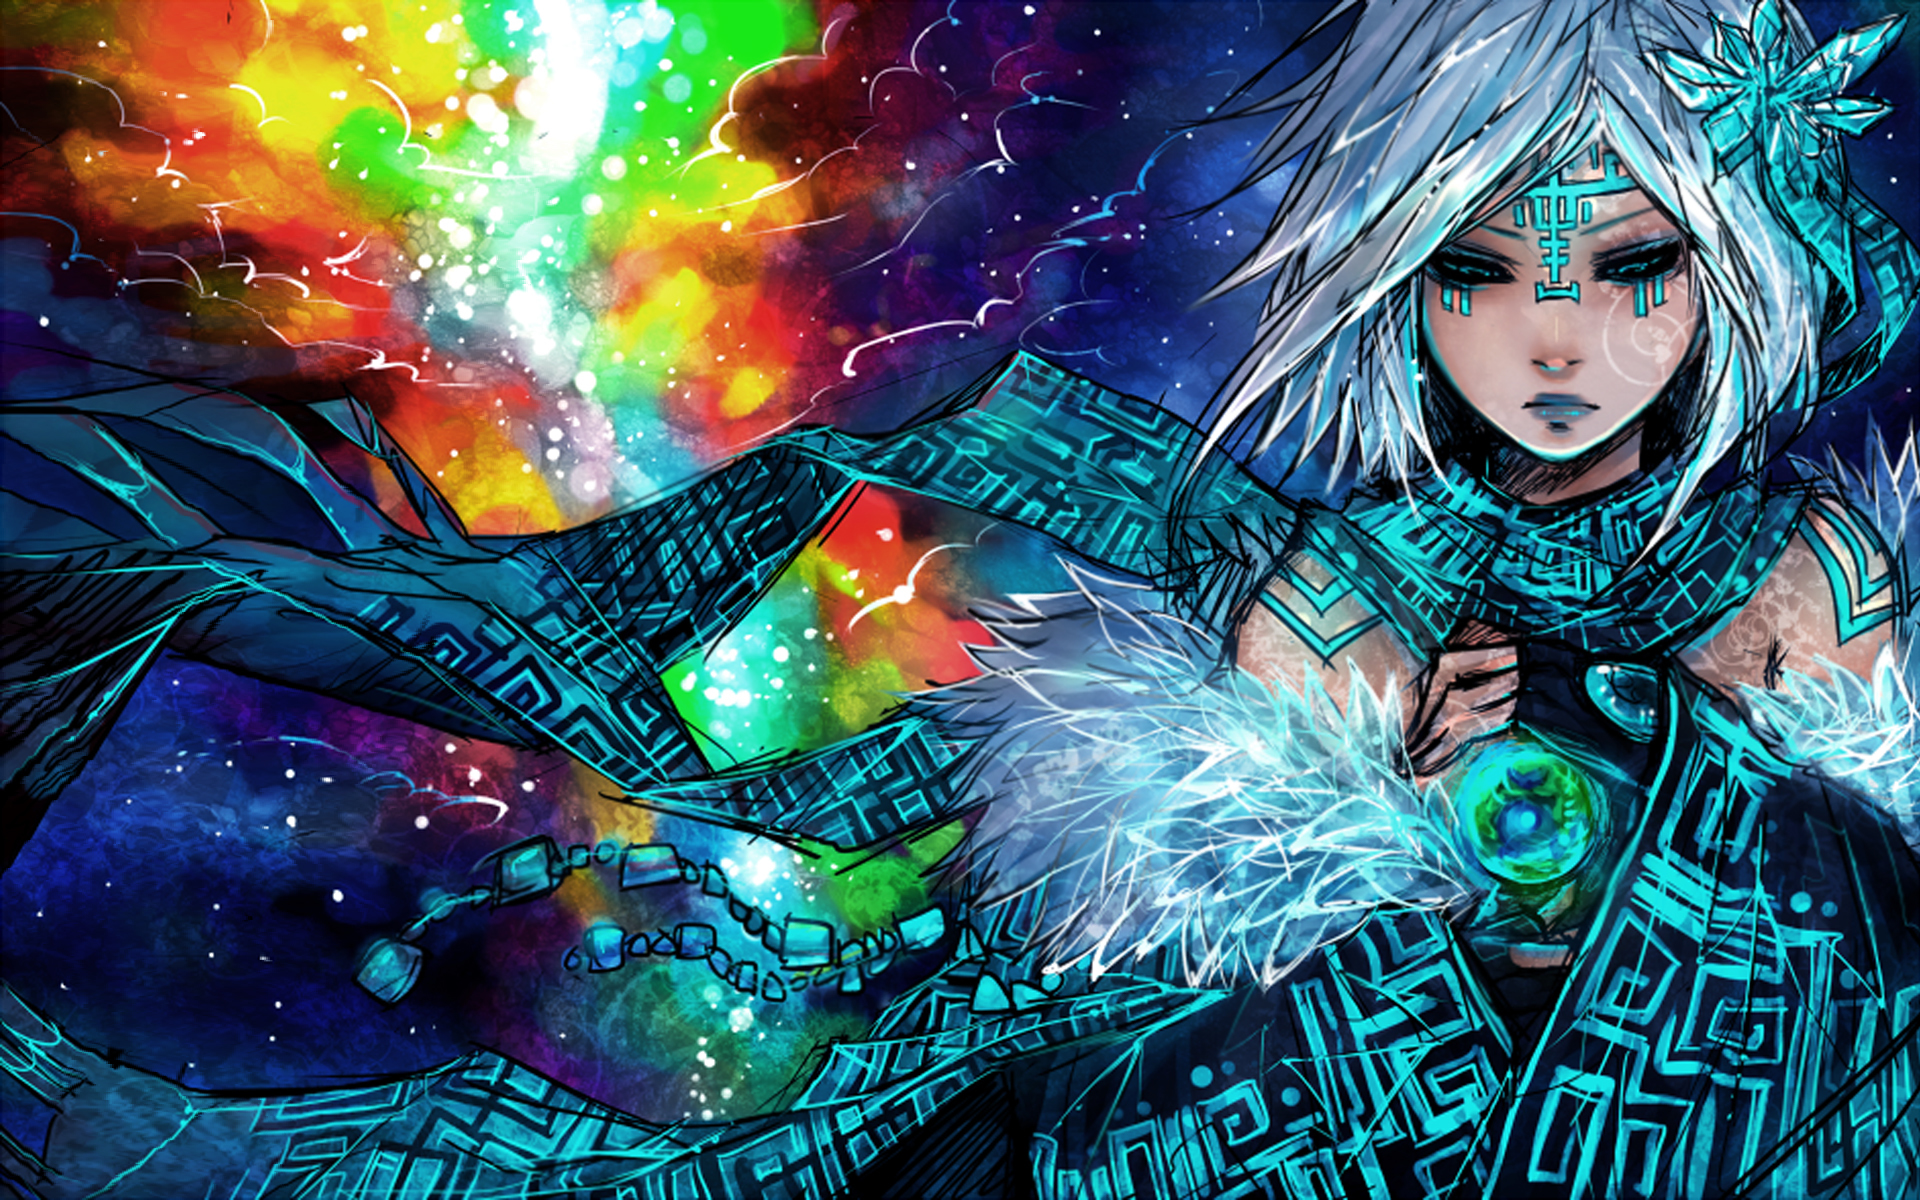 multicolor artwork anime girls HD Wallpaper